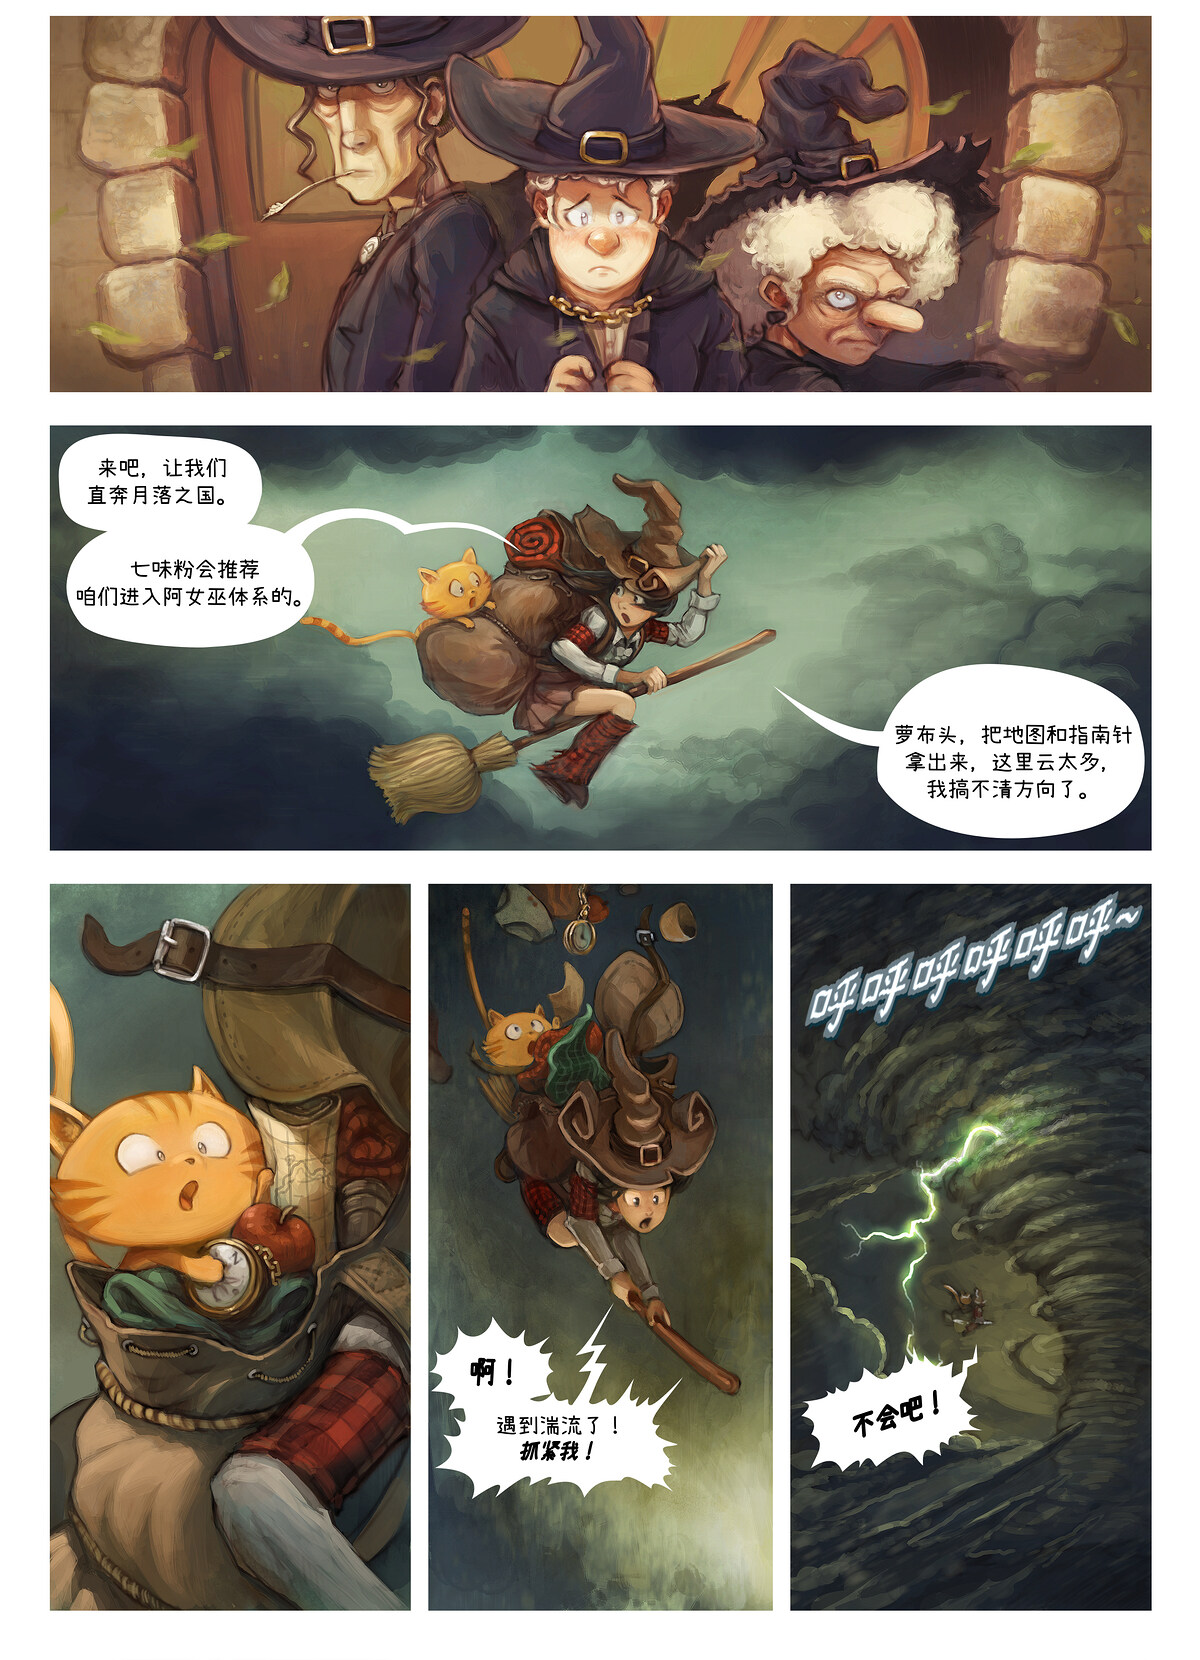 A webcomic page of Pepper&Carrot, 漫画全集 17 [cn], 页面 2